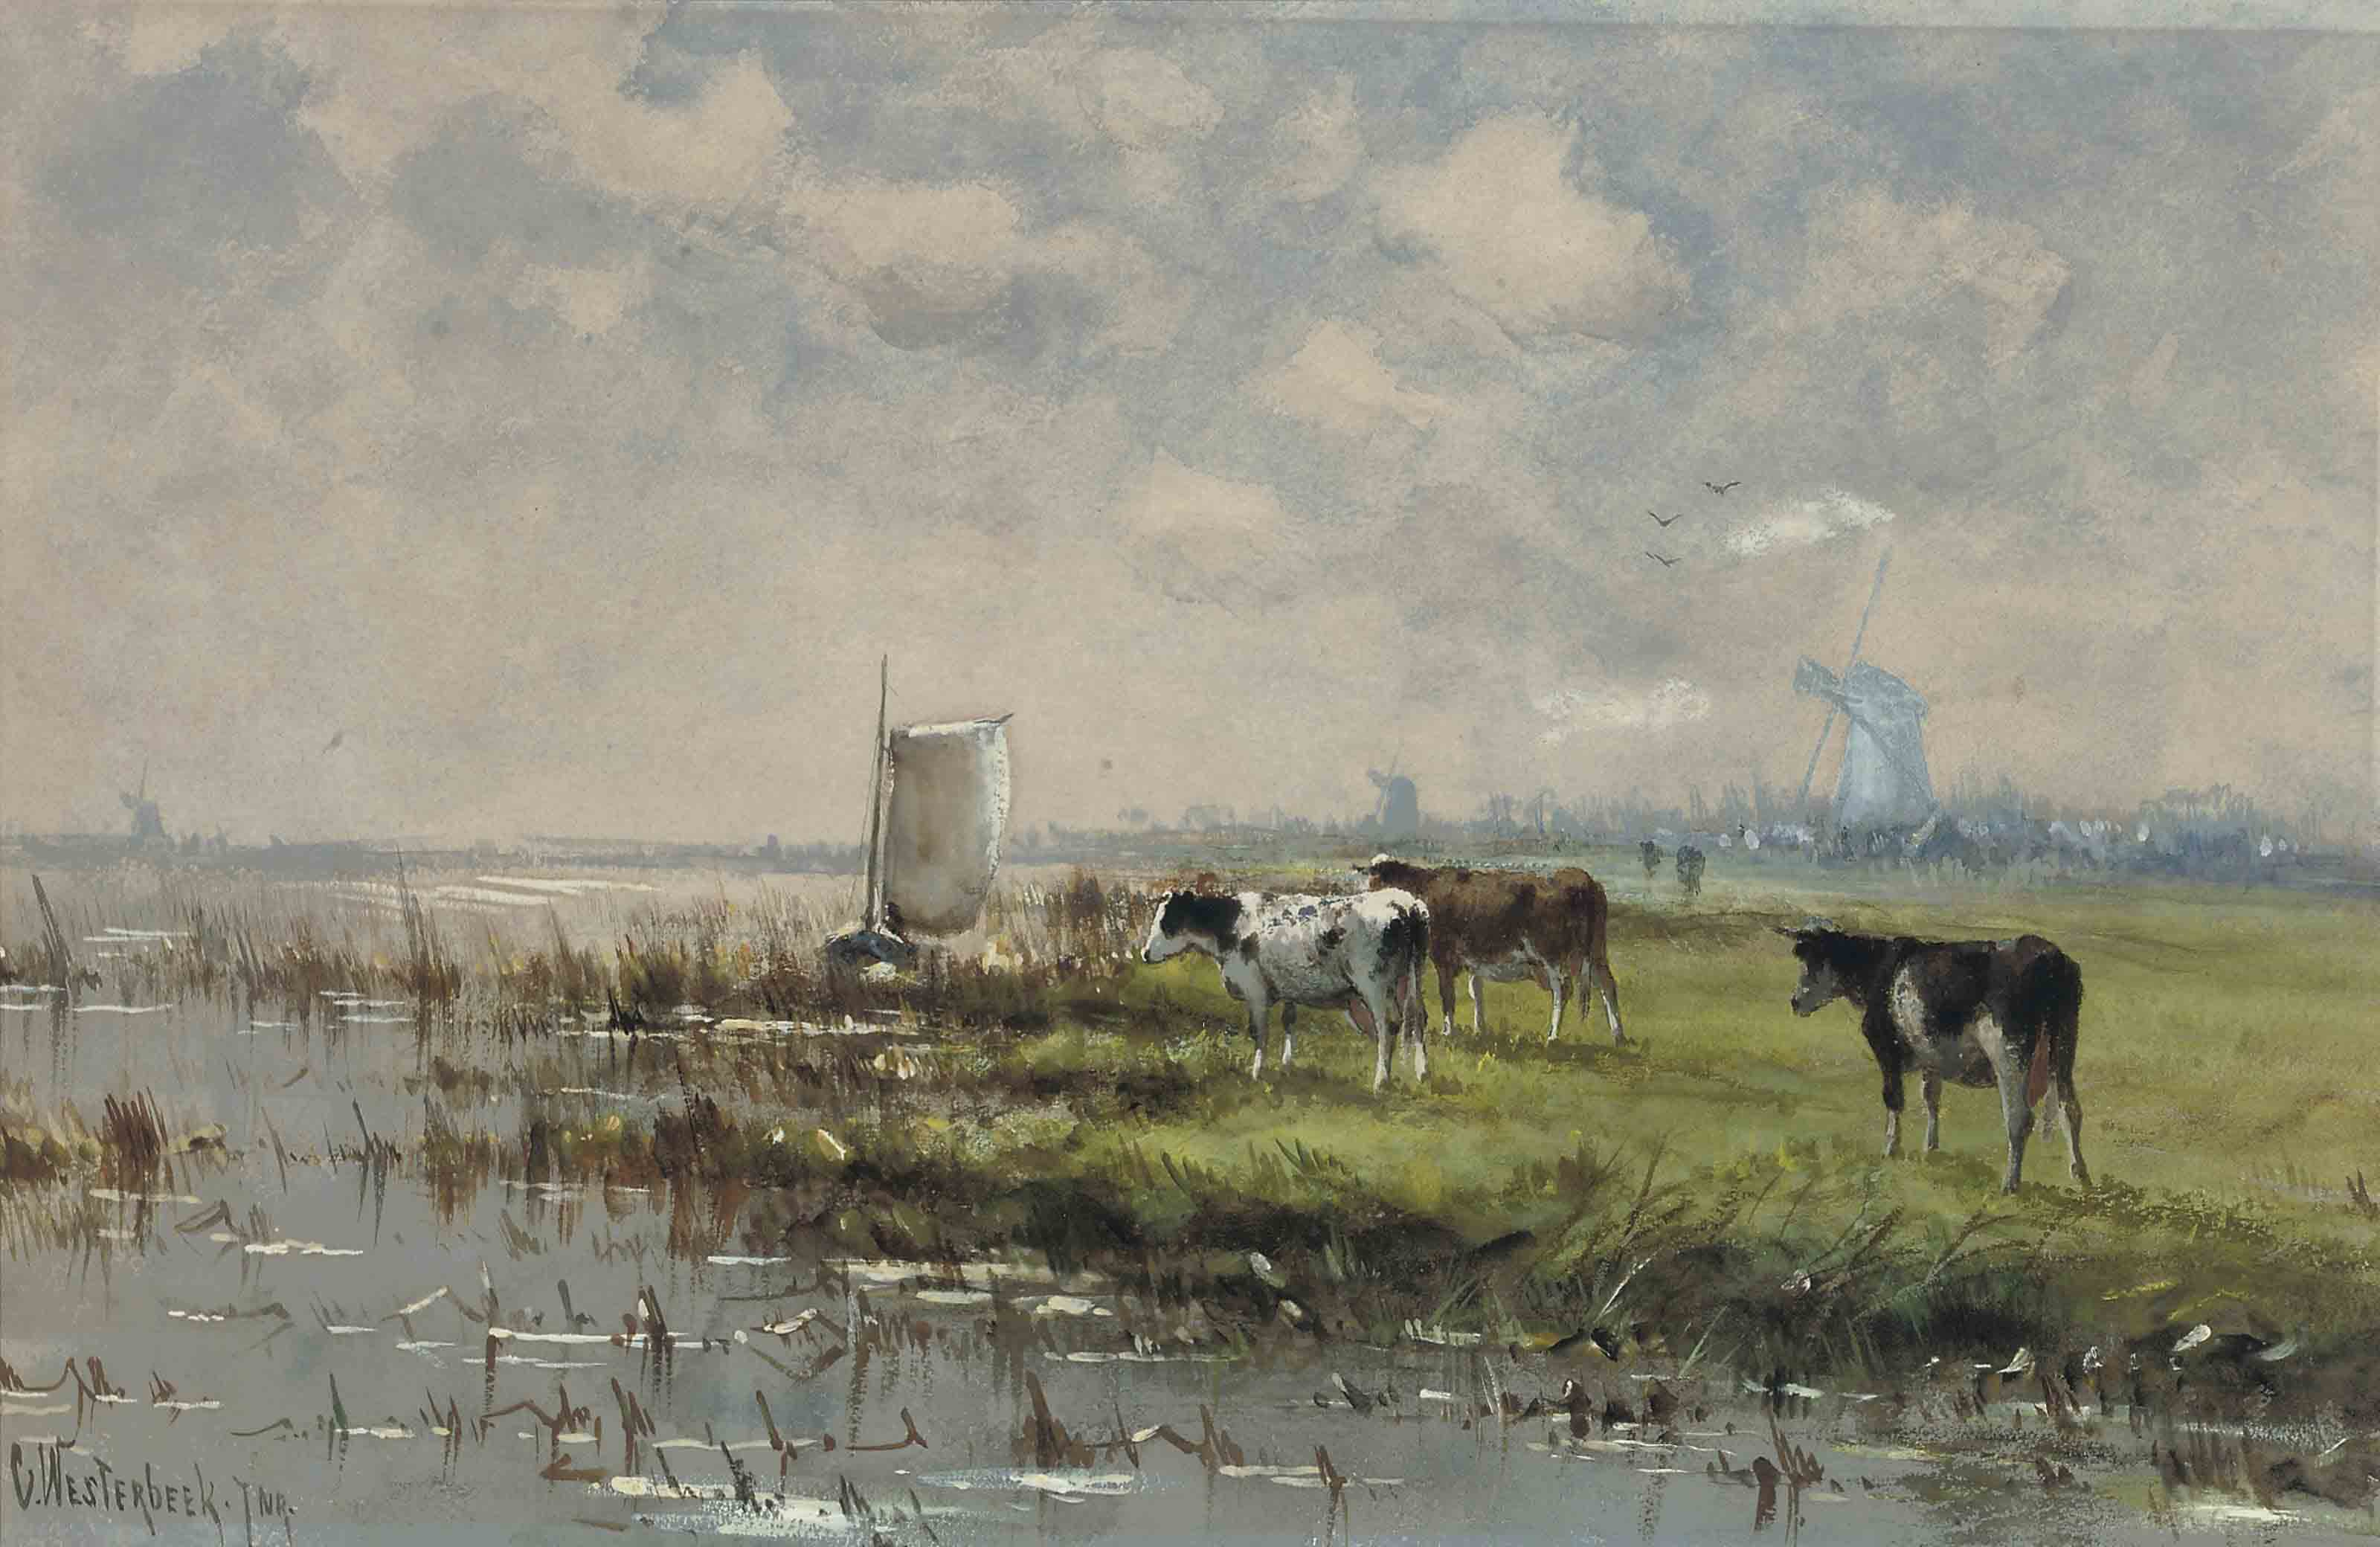 Cattle grazing by the banks of the river on a sunlit afternoon, the Netherlands